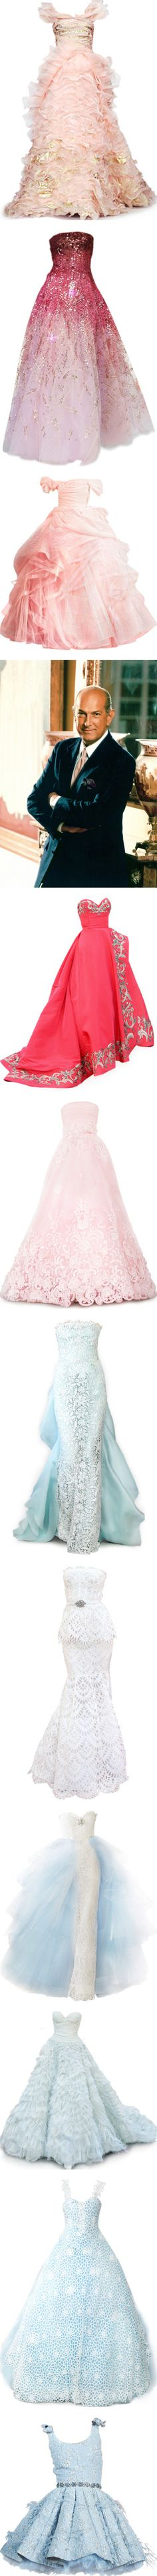 Tribute To Oscar de la Renta by satinee on Polyvore featuring dresses, gowns, long dresses, vestidos, satin gown, satin evening dresses, pink satin dress, pink gown, oscar de la renta ball gown and oscar de la renta dresses